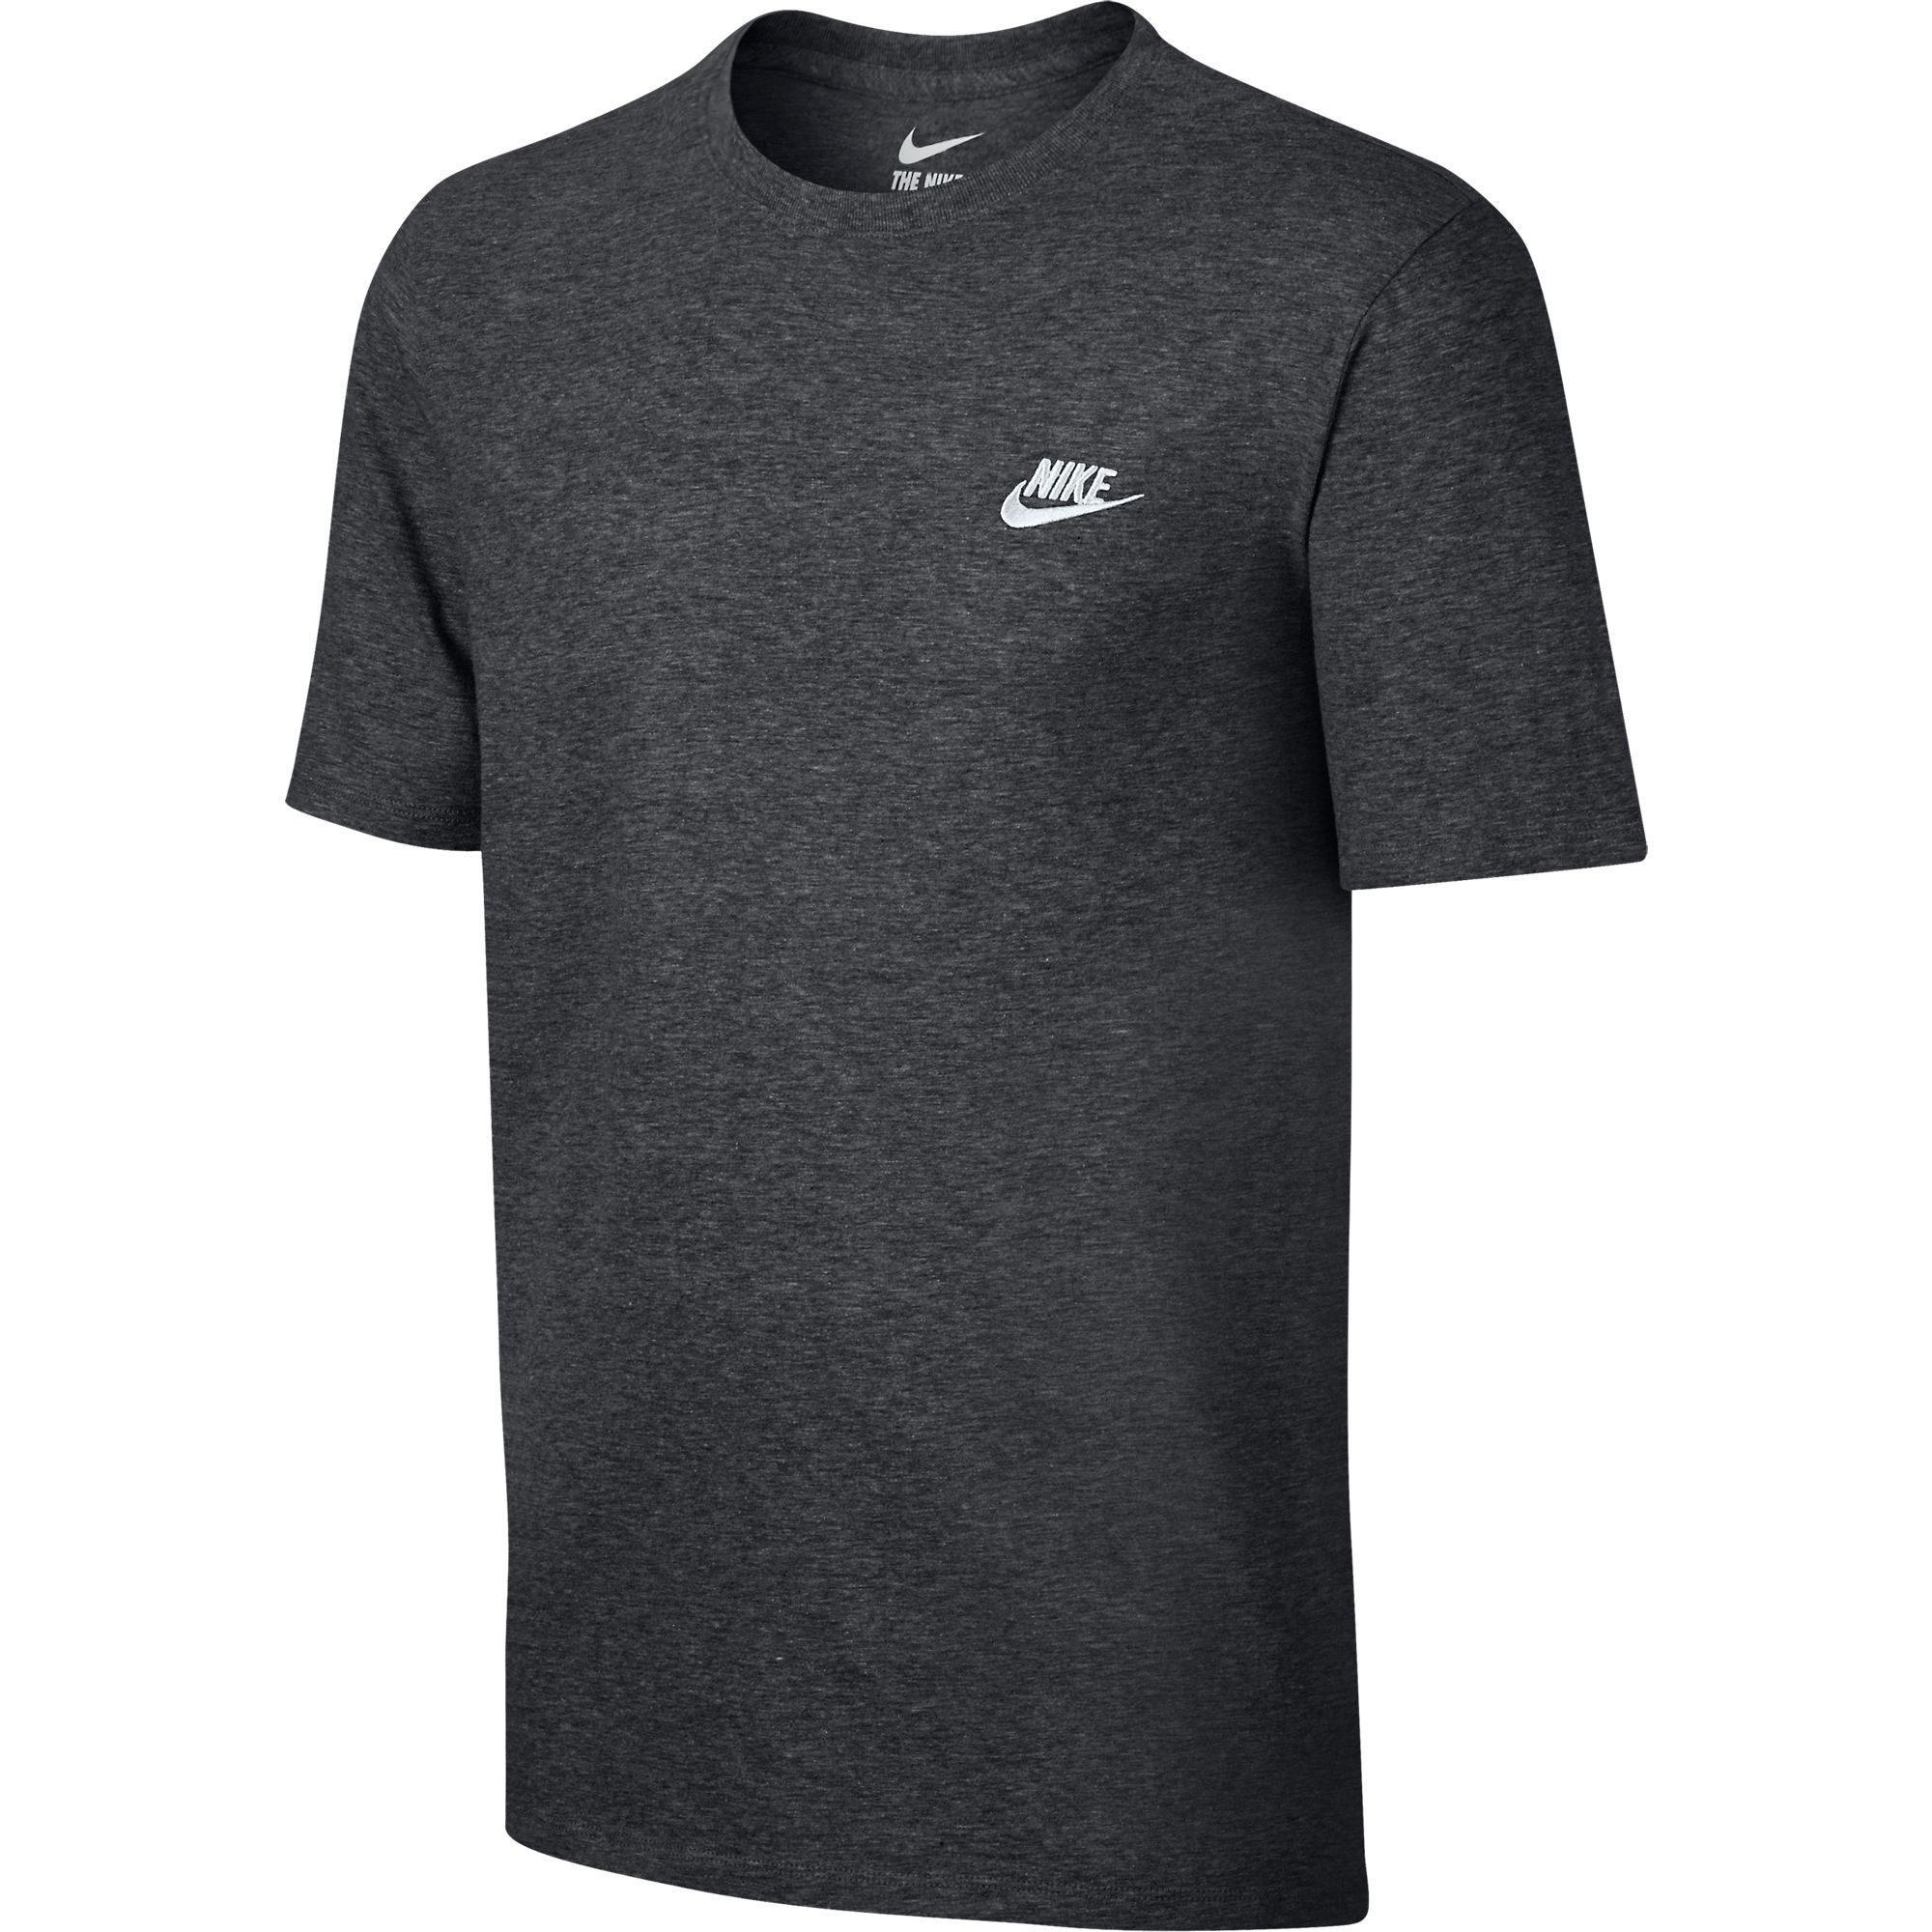 Nike Men 39 S Embroidered Swoosh T Shirt Charcoal Heather